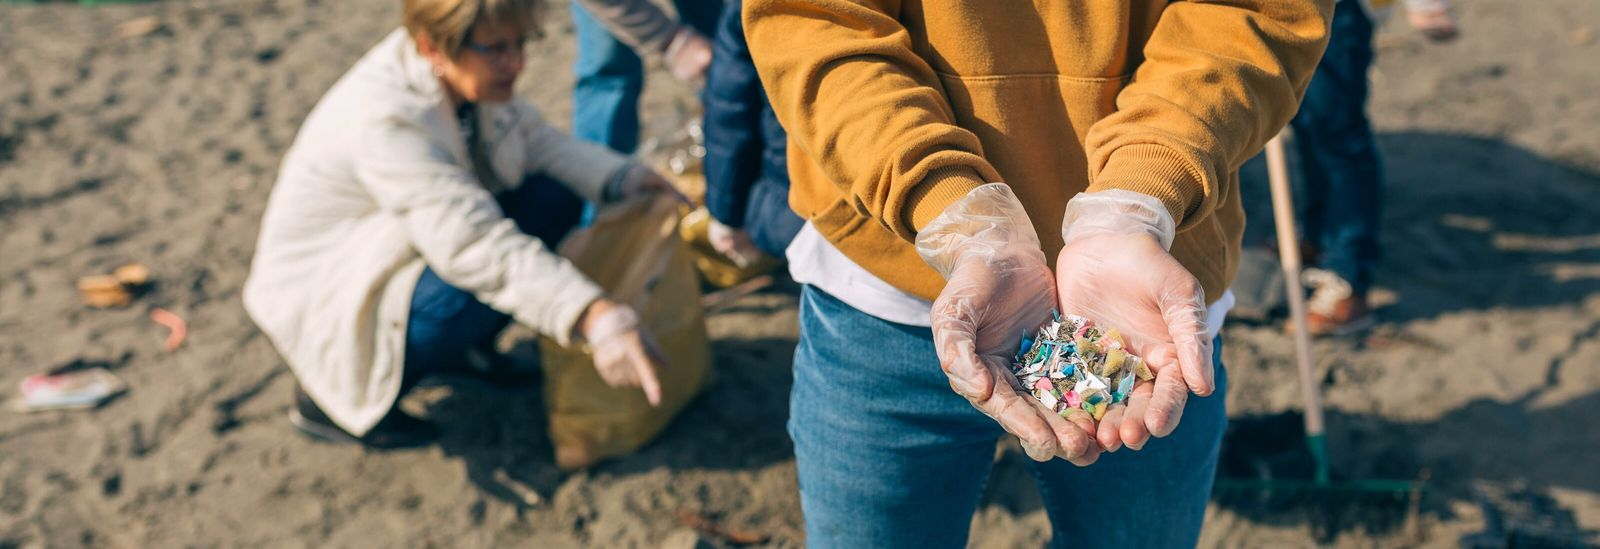 Plastic debris collected by a beach litter pick. Degradation of the plastics can often result in ...